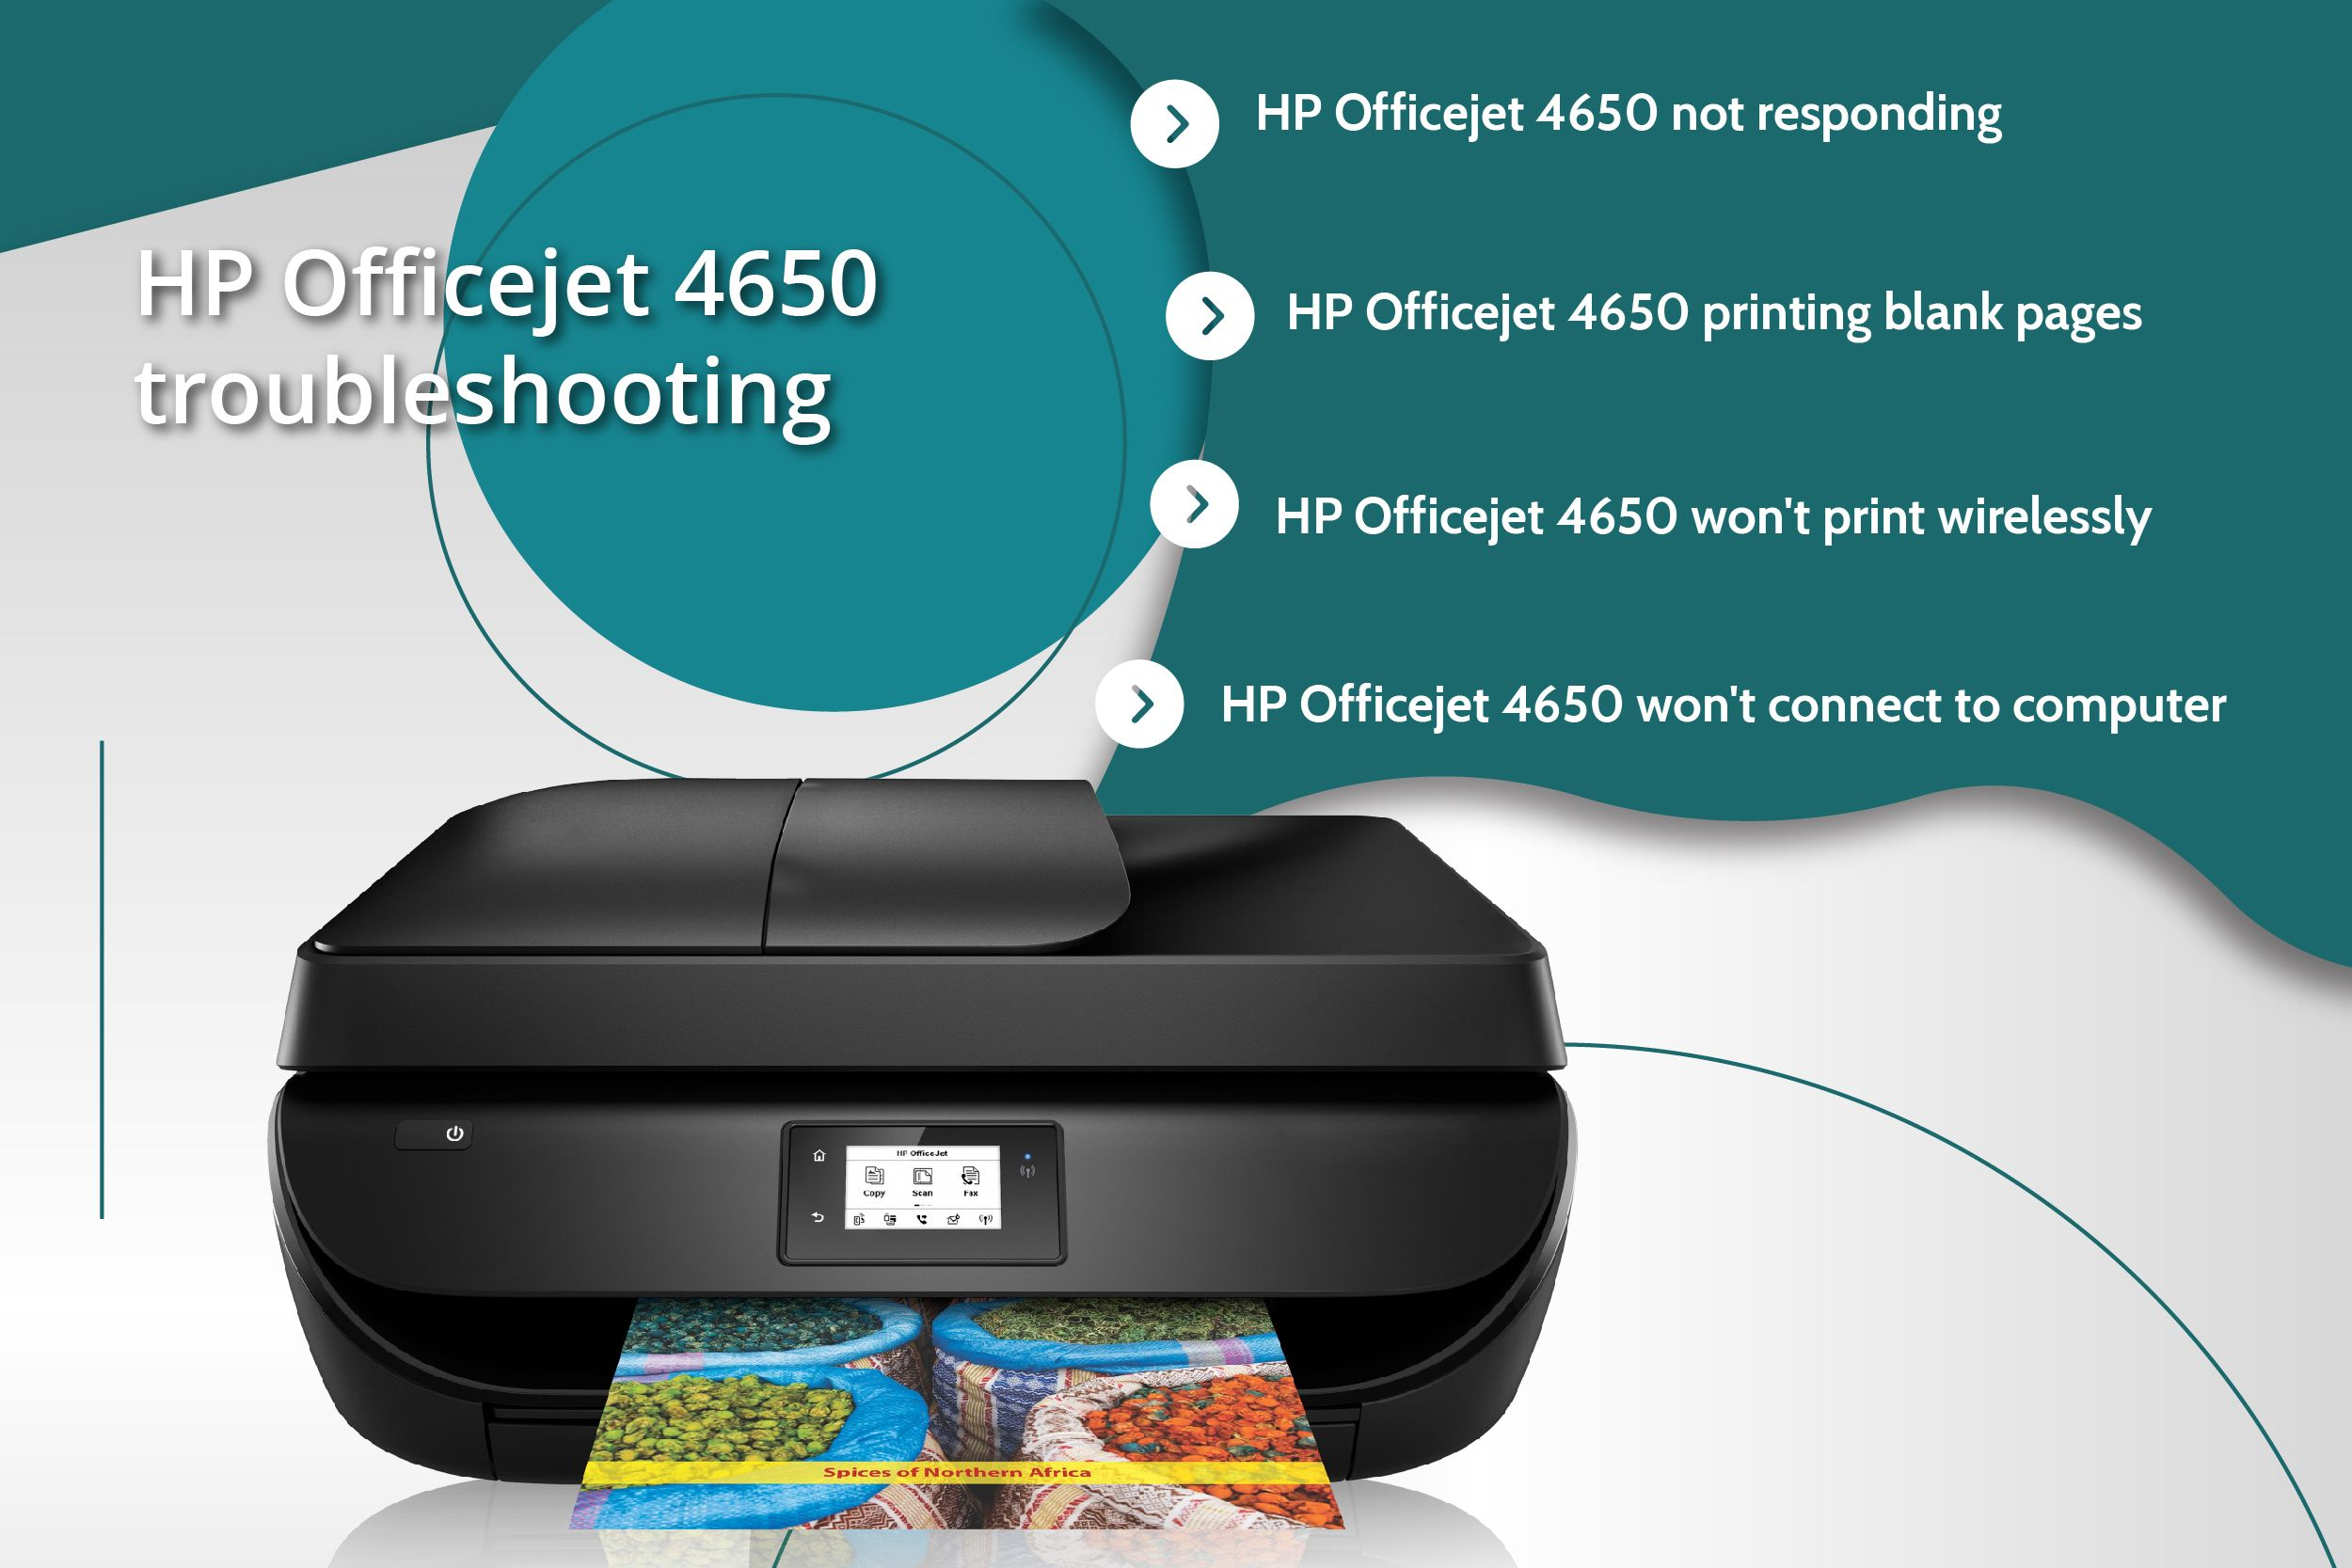 HP Officejet 4650 printer common issues such us printer not